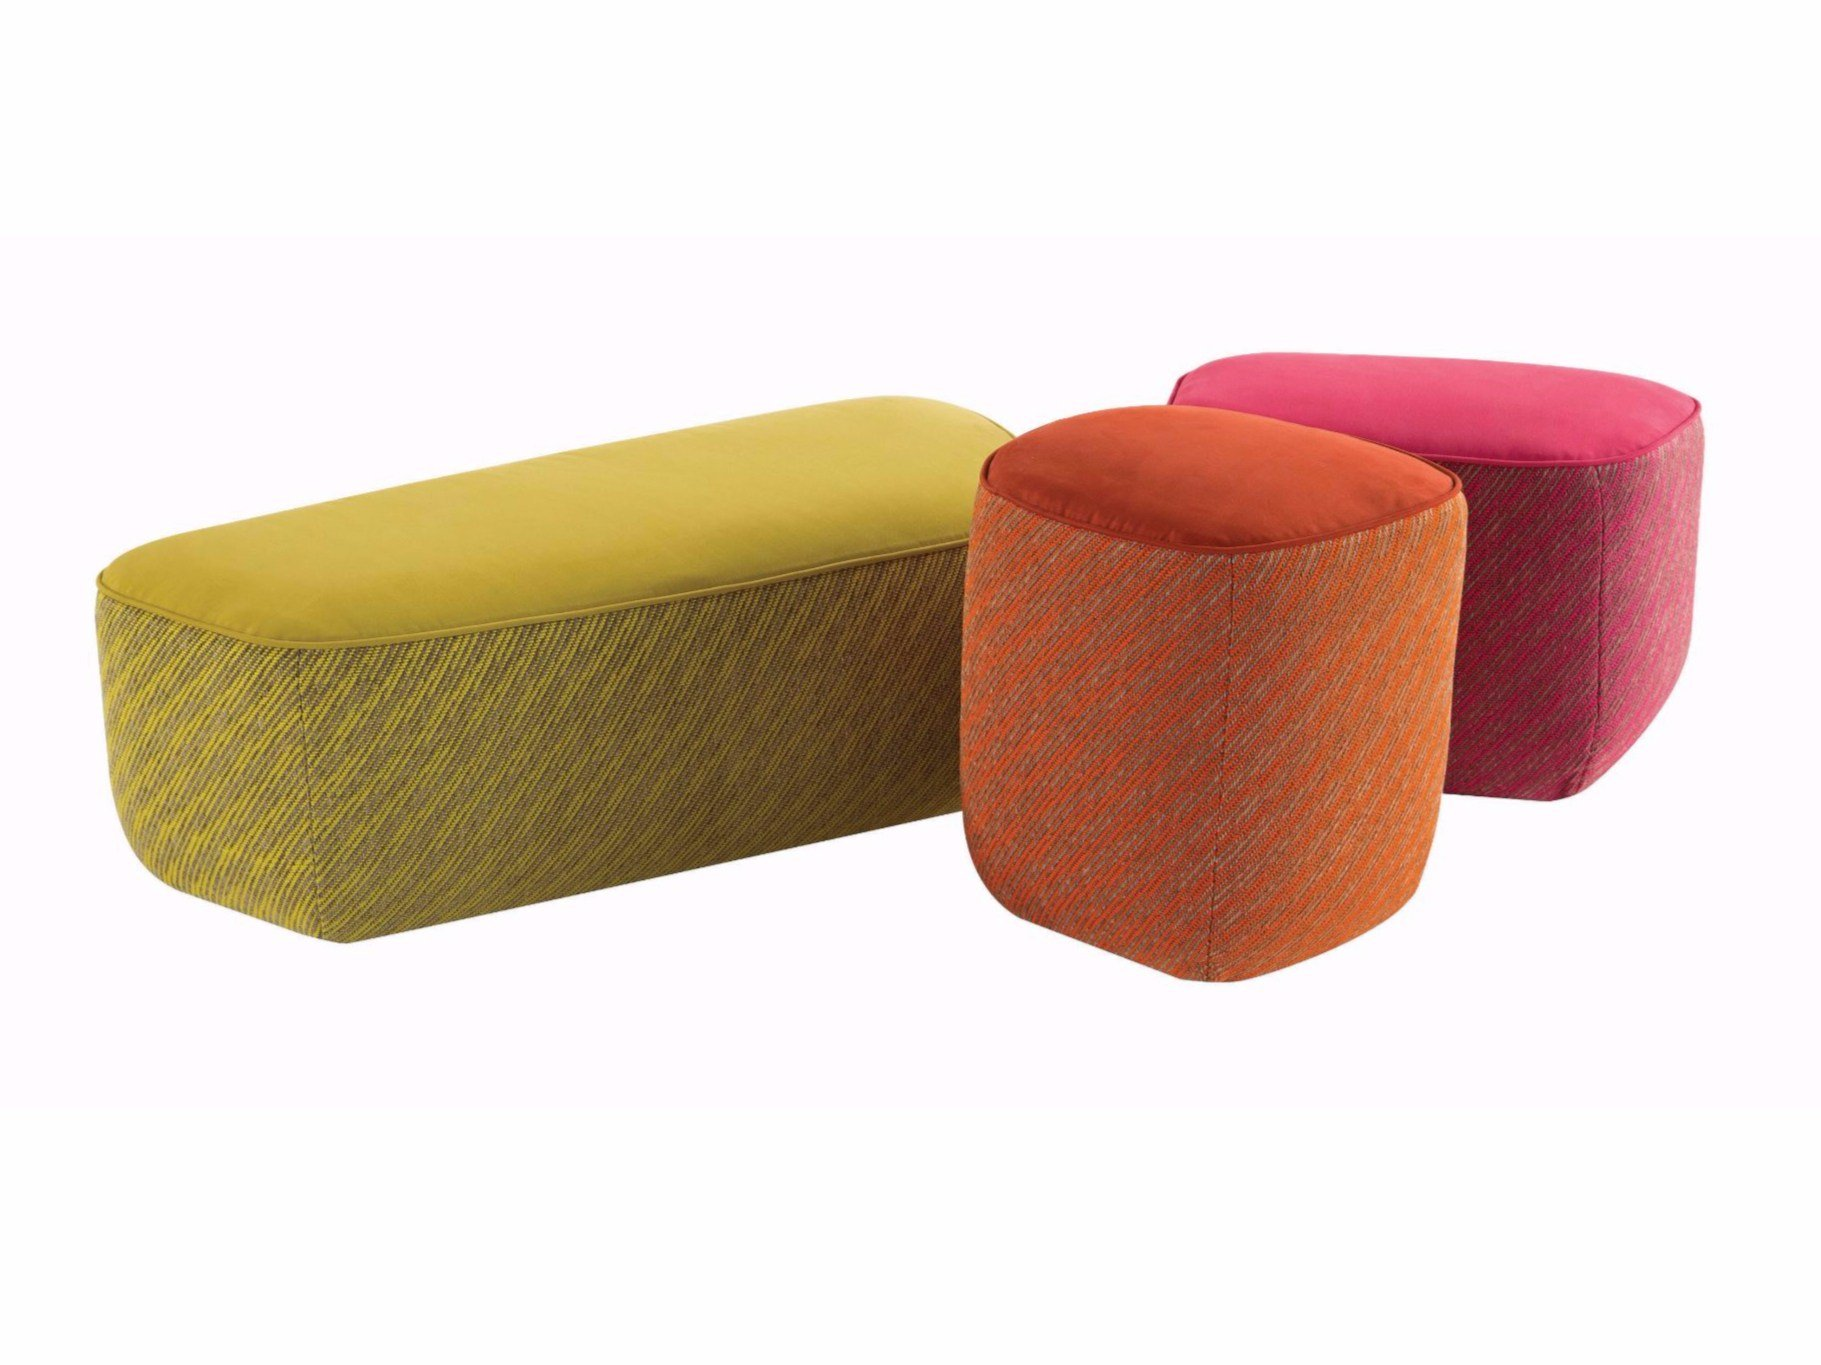 trilogie pouf en tissu by roche bobois design sacha lakic. Black Bedroom Furniture Sets. Home Design Ideas